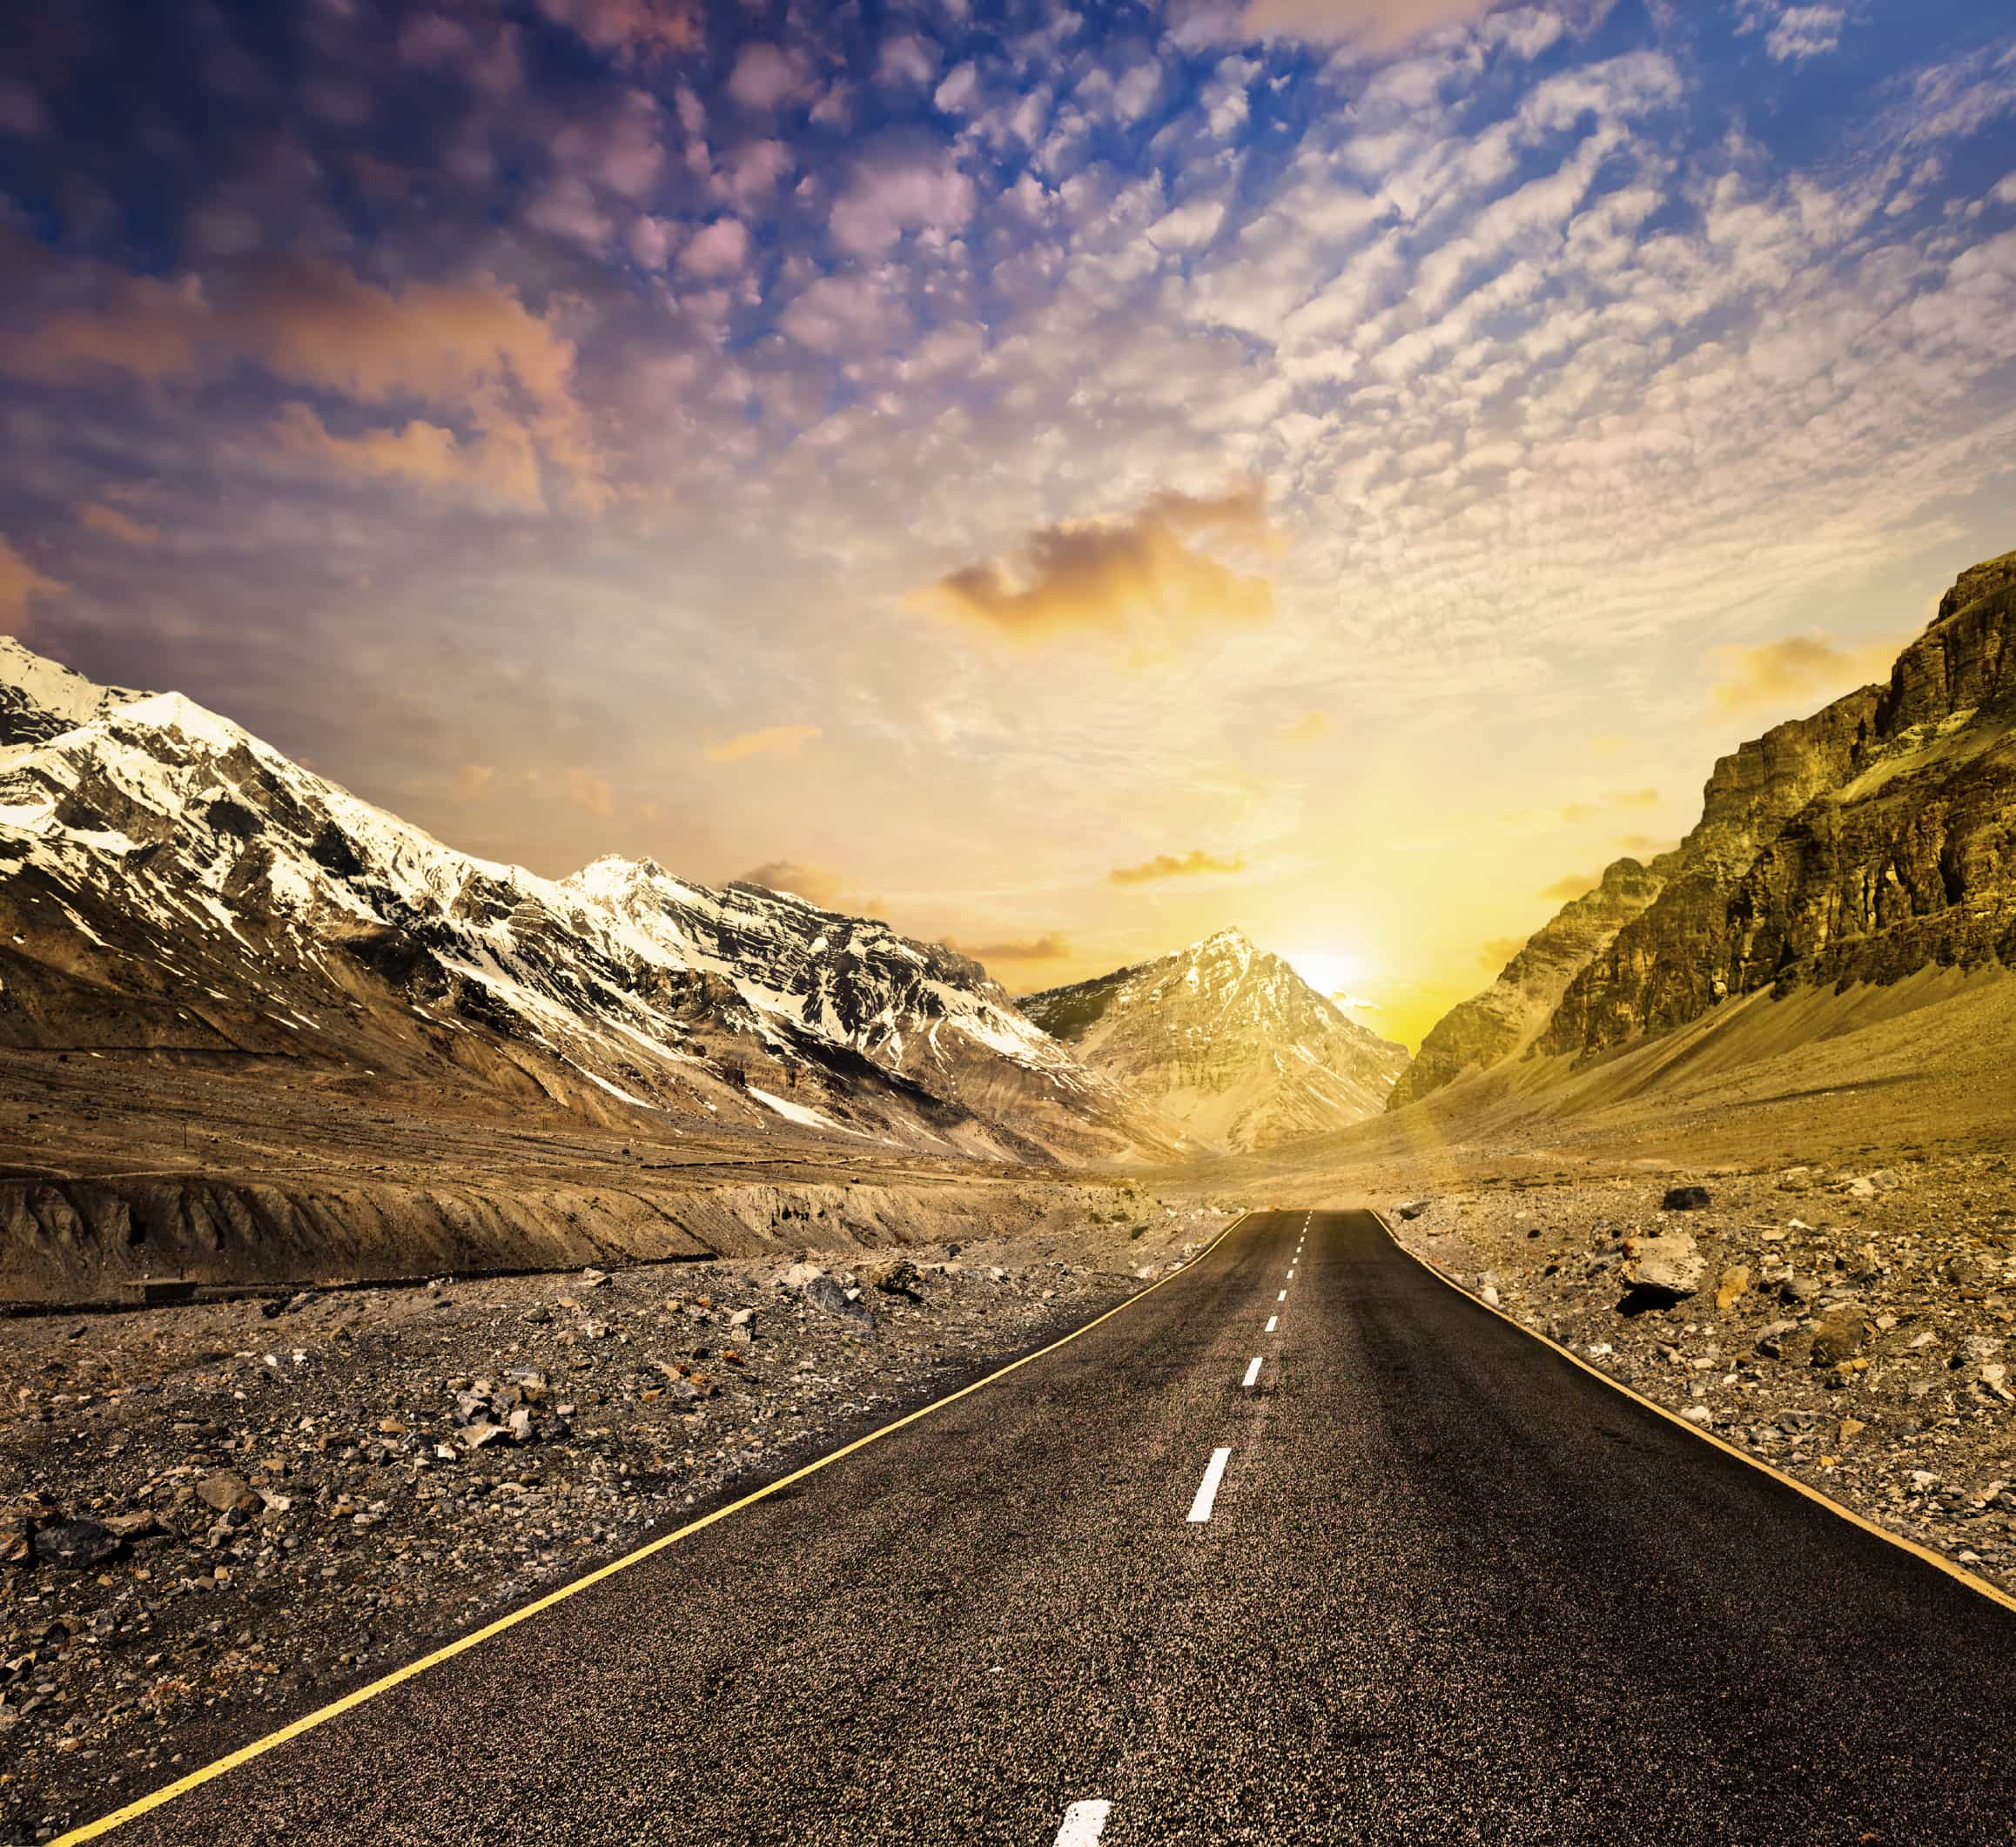 The Road Next Travelled